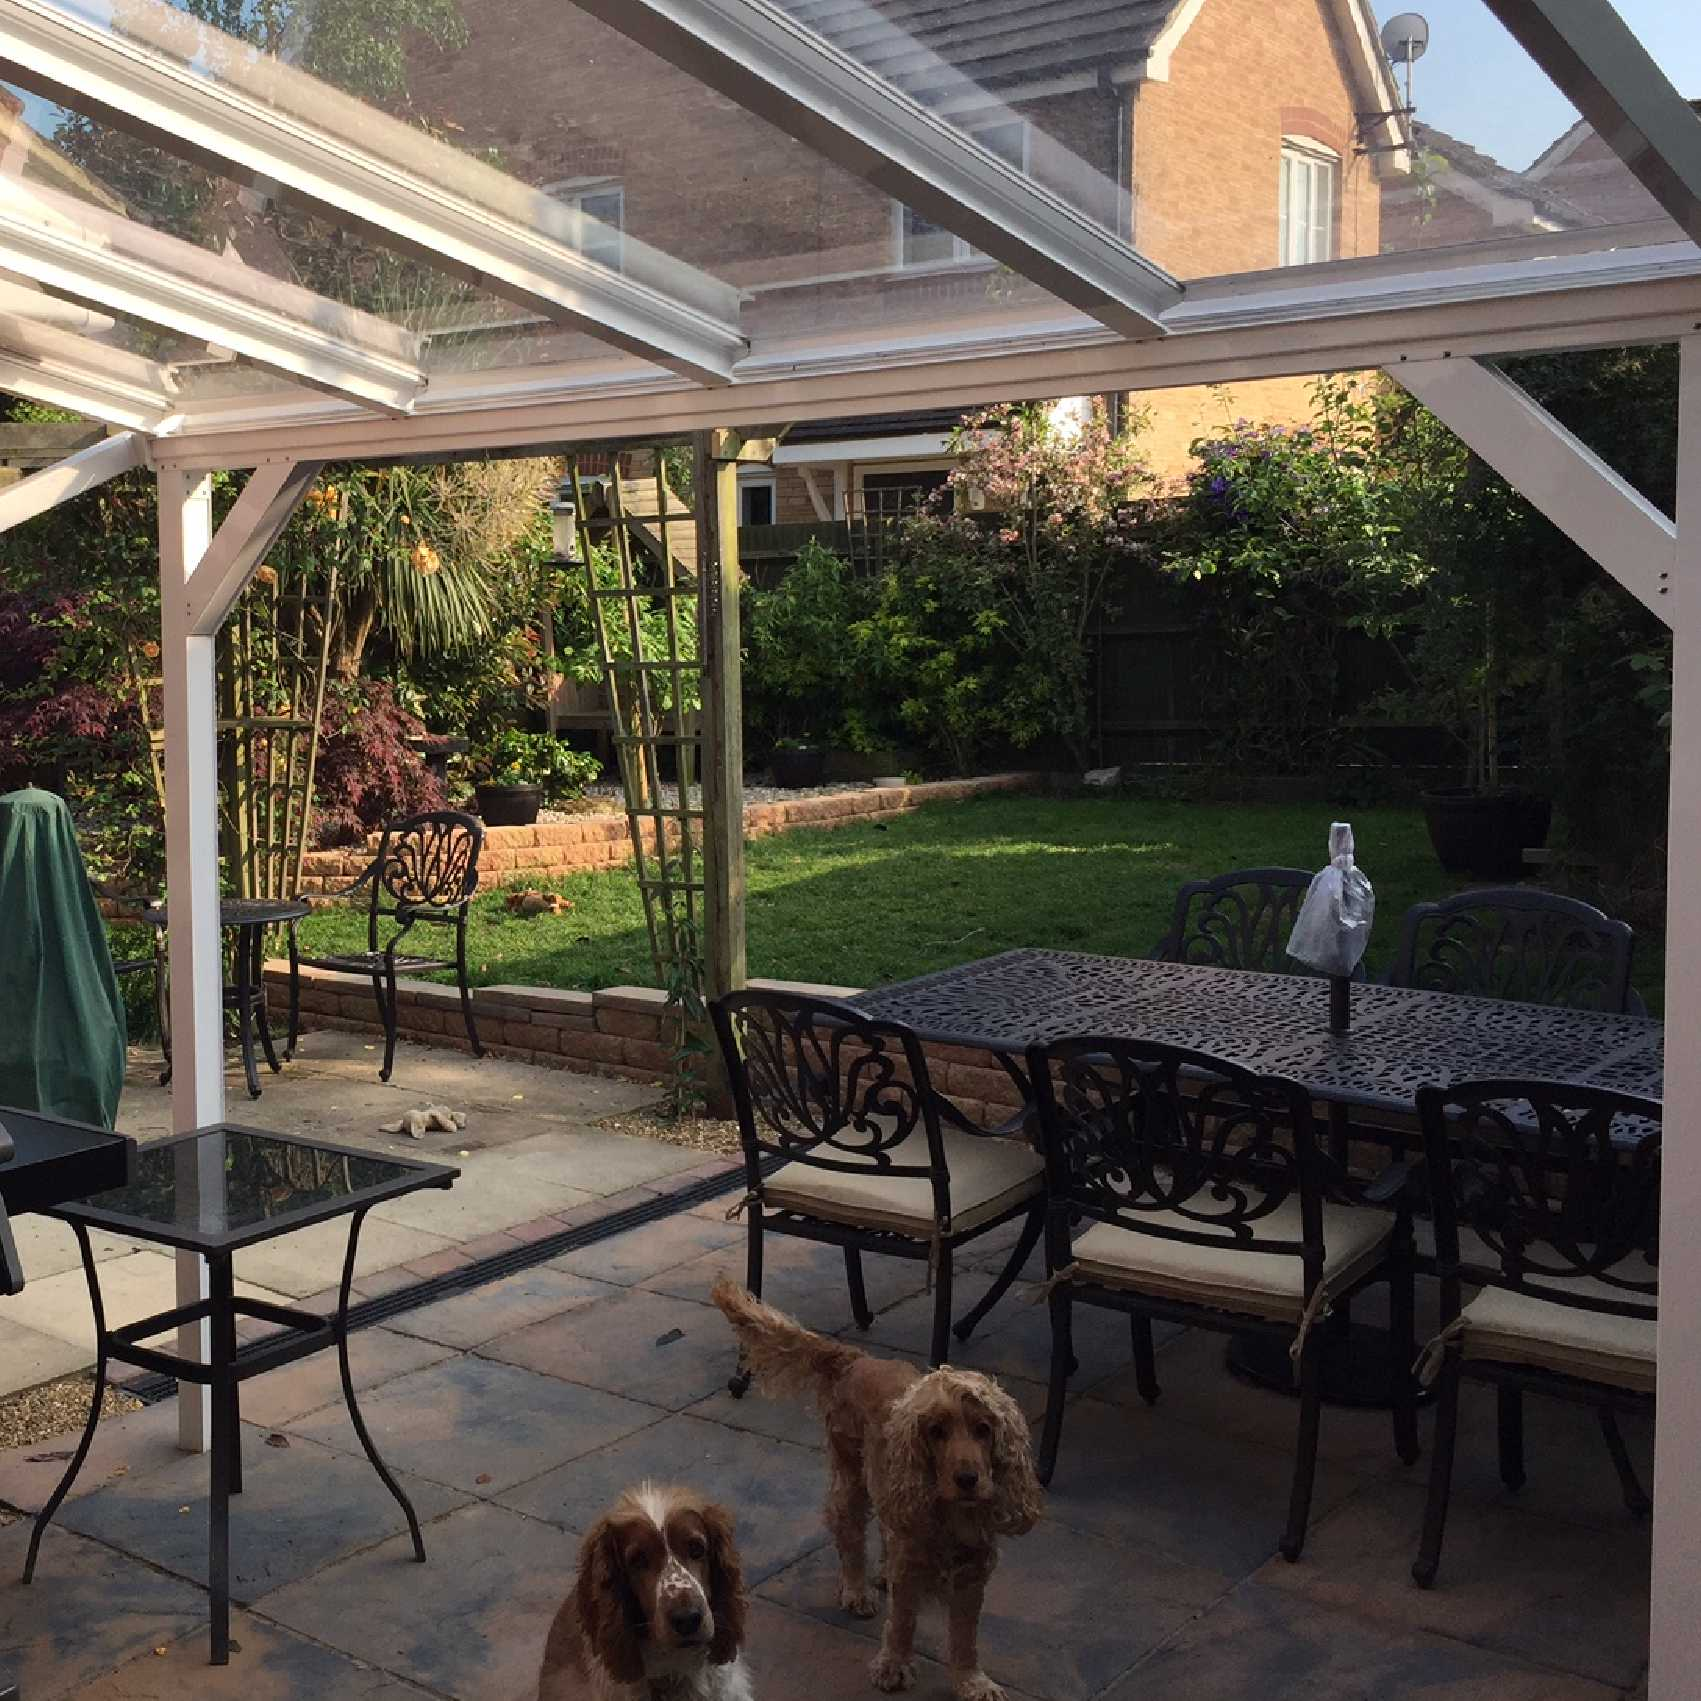 Affordable Omega Smart Lean-To Canopy with 6mm Glass Clear Plate Polycarbonate Glazing - 9.0m (W) x 4.0m (P), (4) Supporting Posts